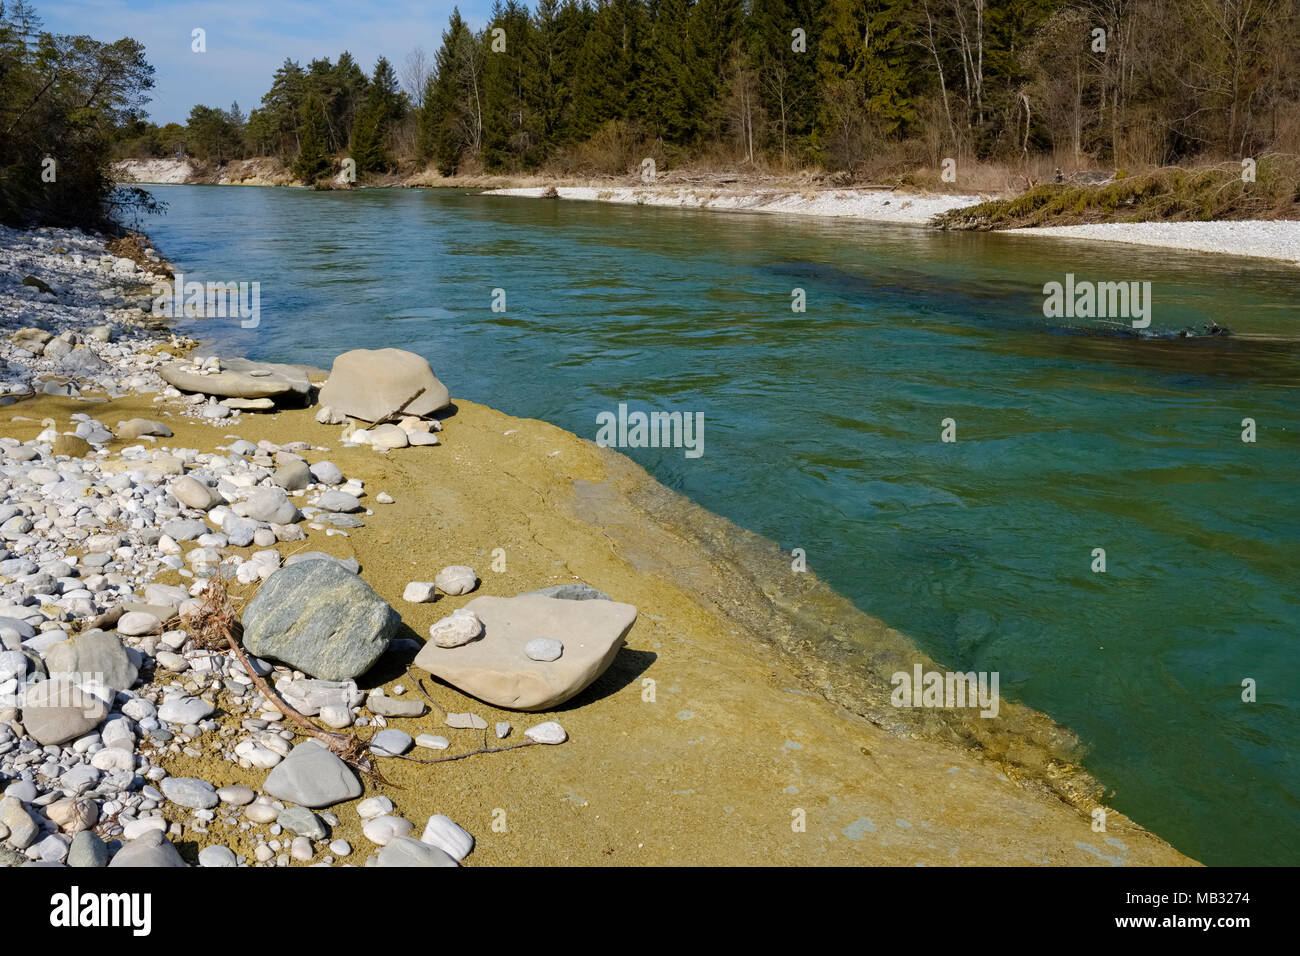 Clay at the riverbank, Isar, Nature Reserve Isarauen, Geretsried, Upper Bavaria, Bavaria, Germany - Stock Image